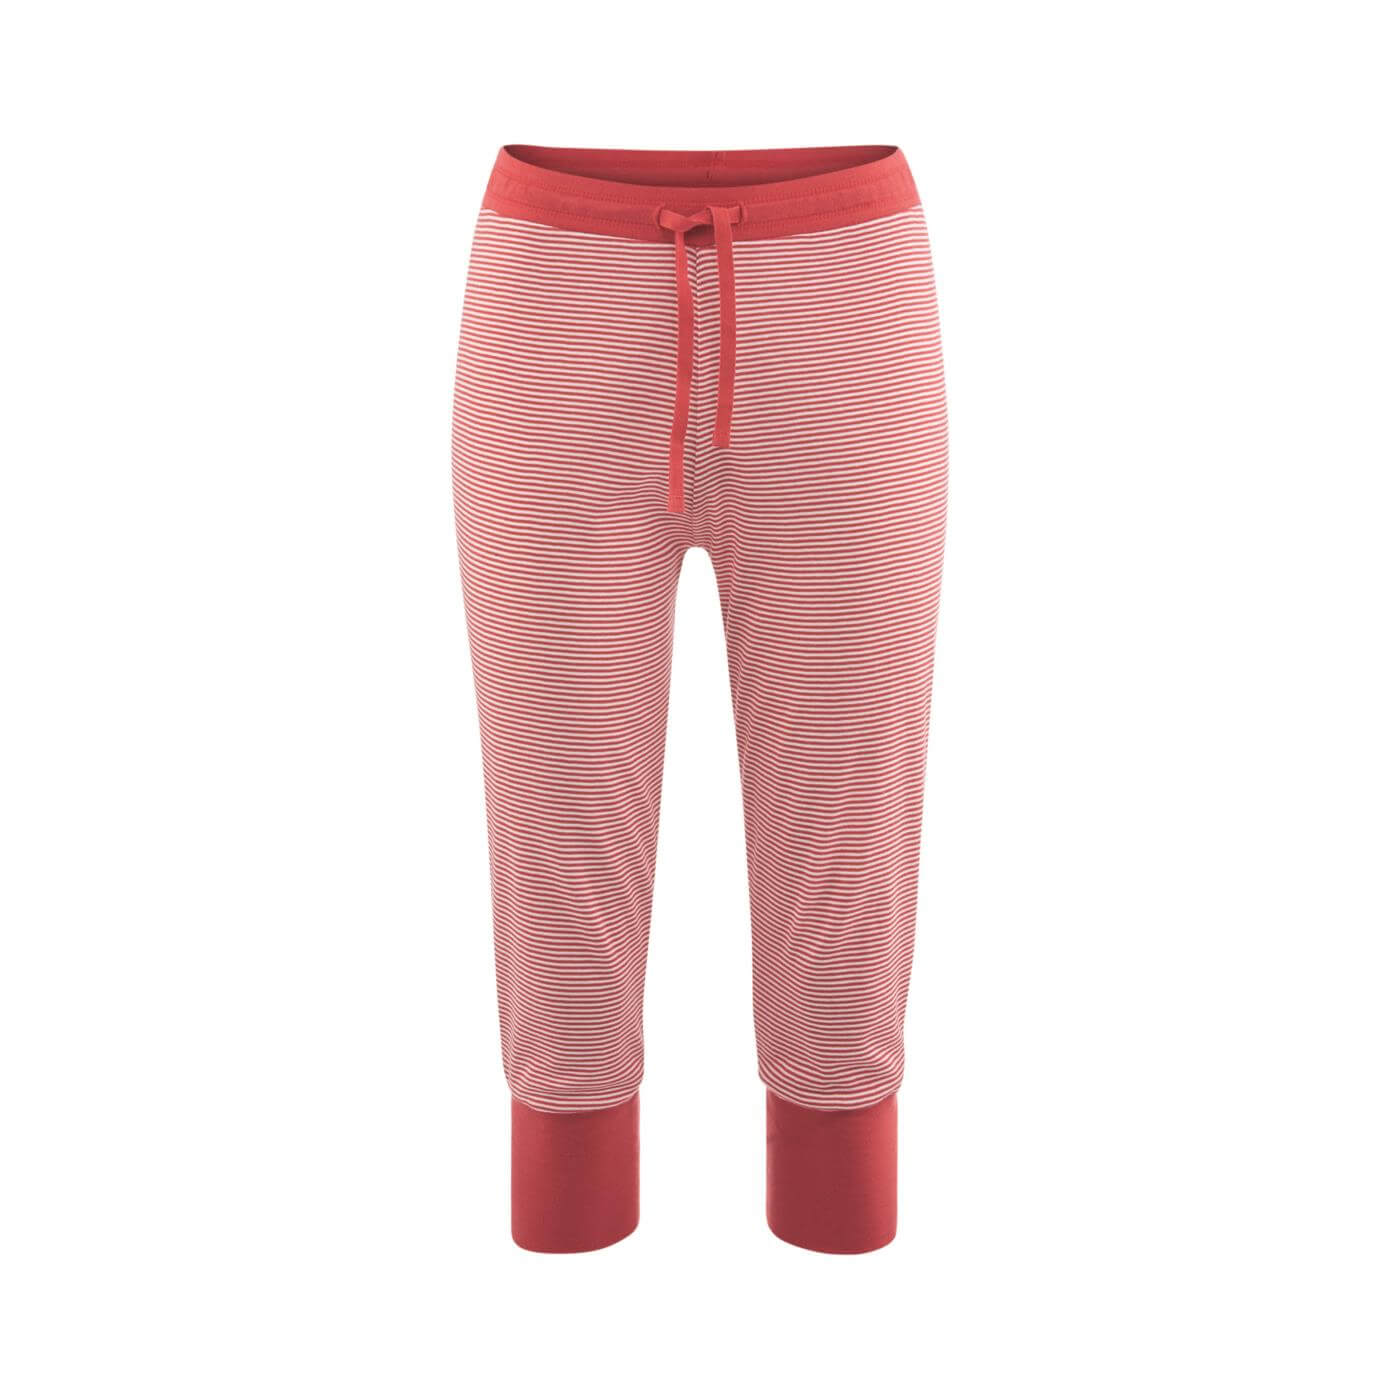 3/4 sleep trousers